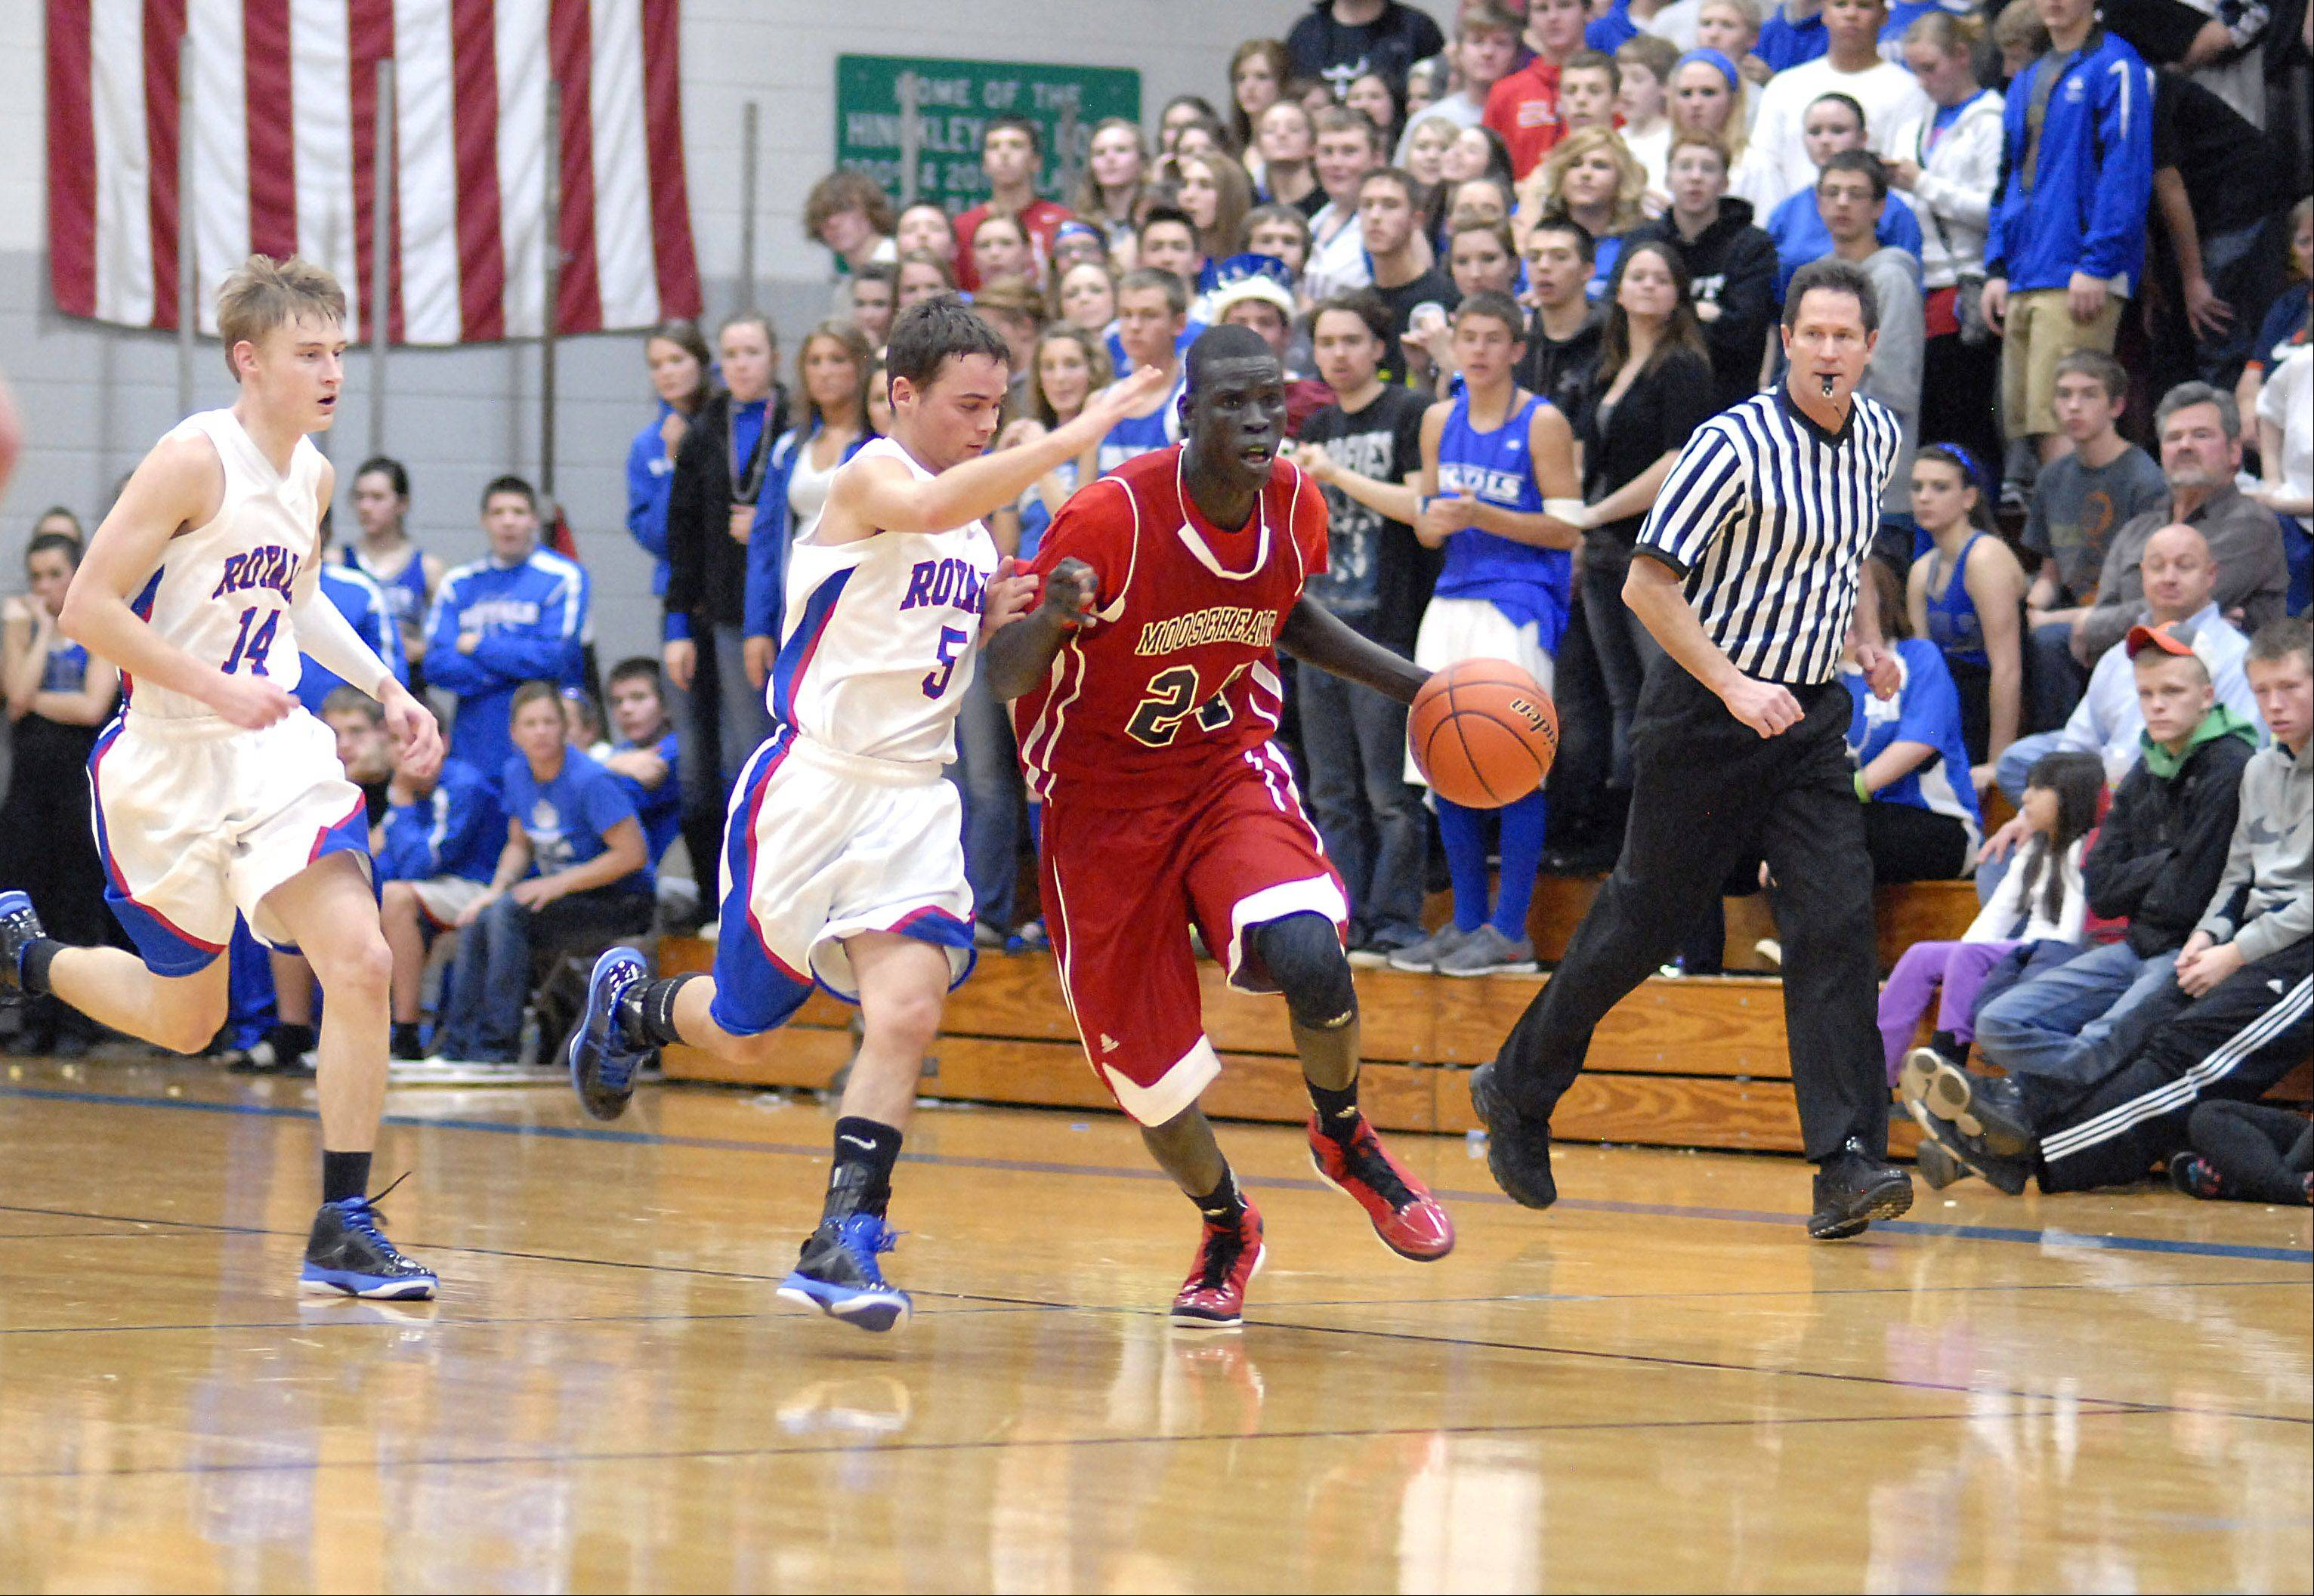 Mooseheart's Mangisto Deng speeds up the court with Hinckley-Big Rock's Bernie Conley in pursuit during the last few minutes of the fourth quarter on Wednesday, December 5.